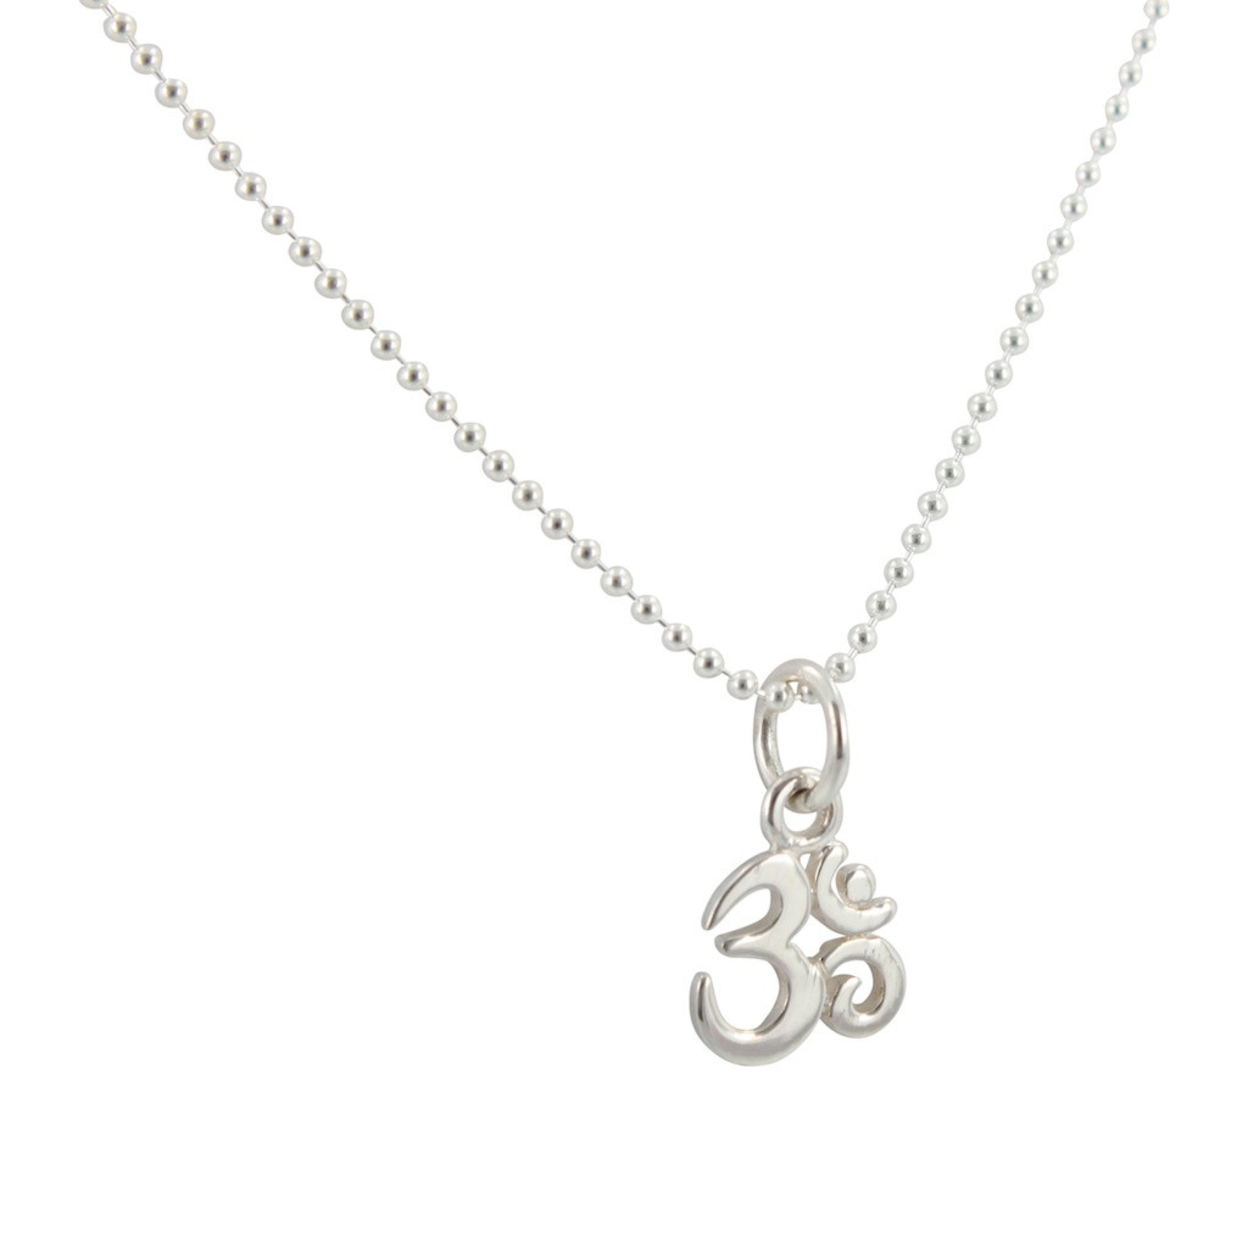 Tiny Om Necklace On Sterling Silver Ball Chain, #6837s 18